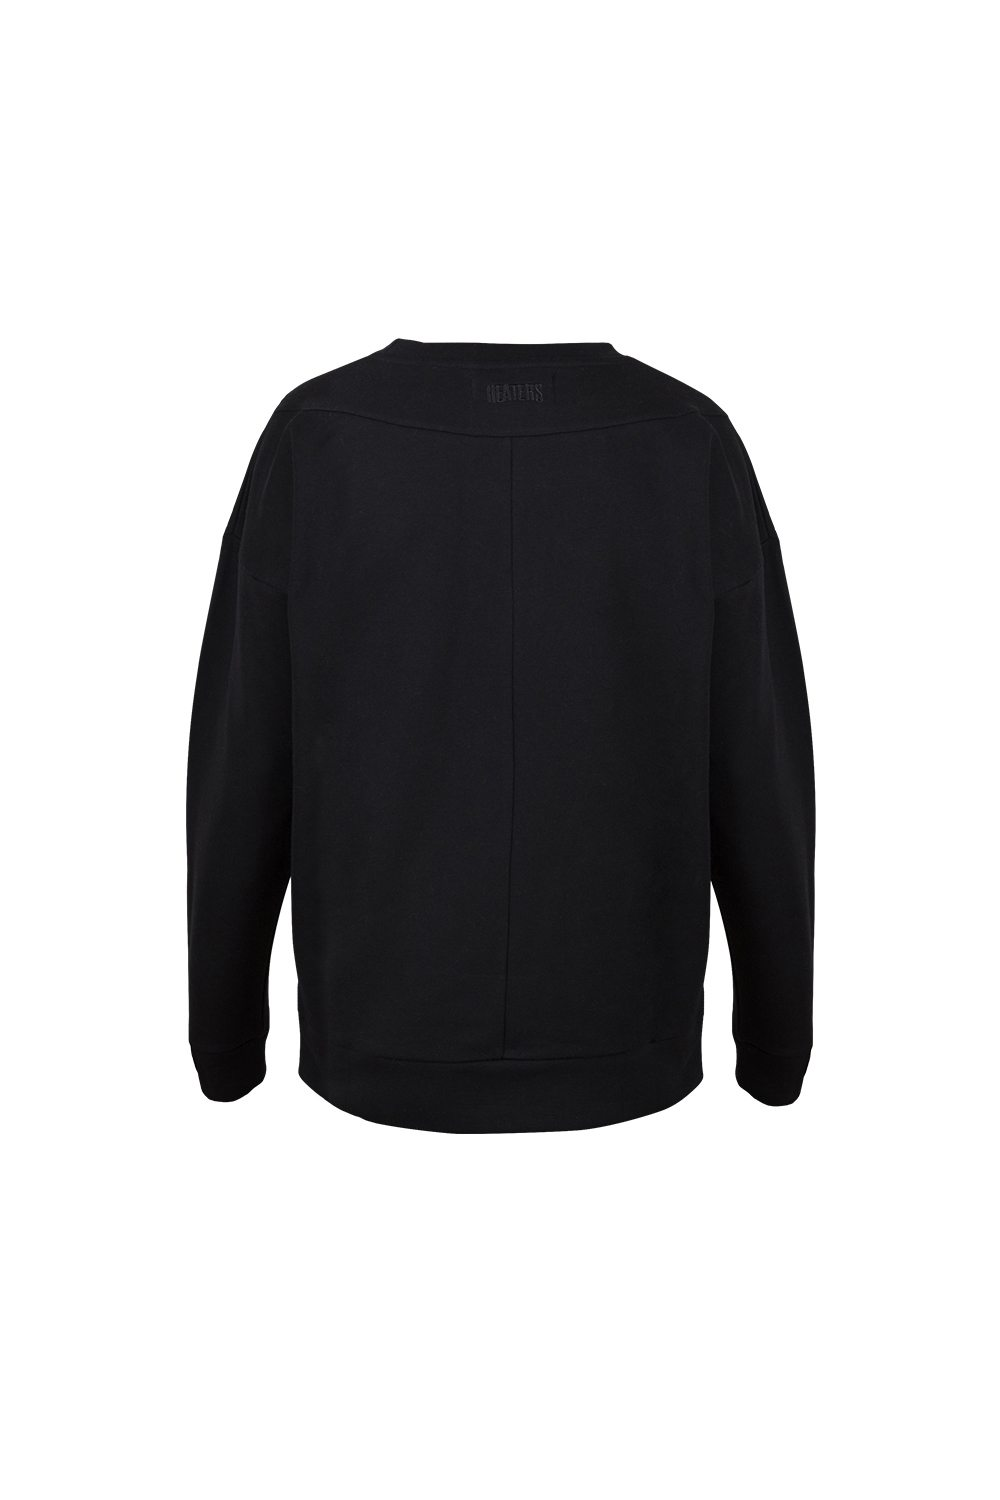 DROPPED SWEATER BLACK